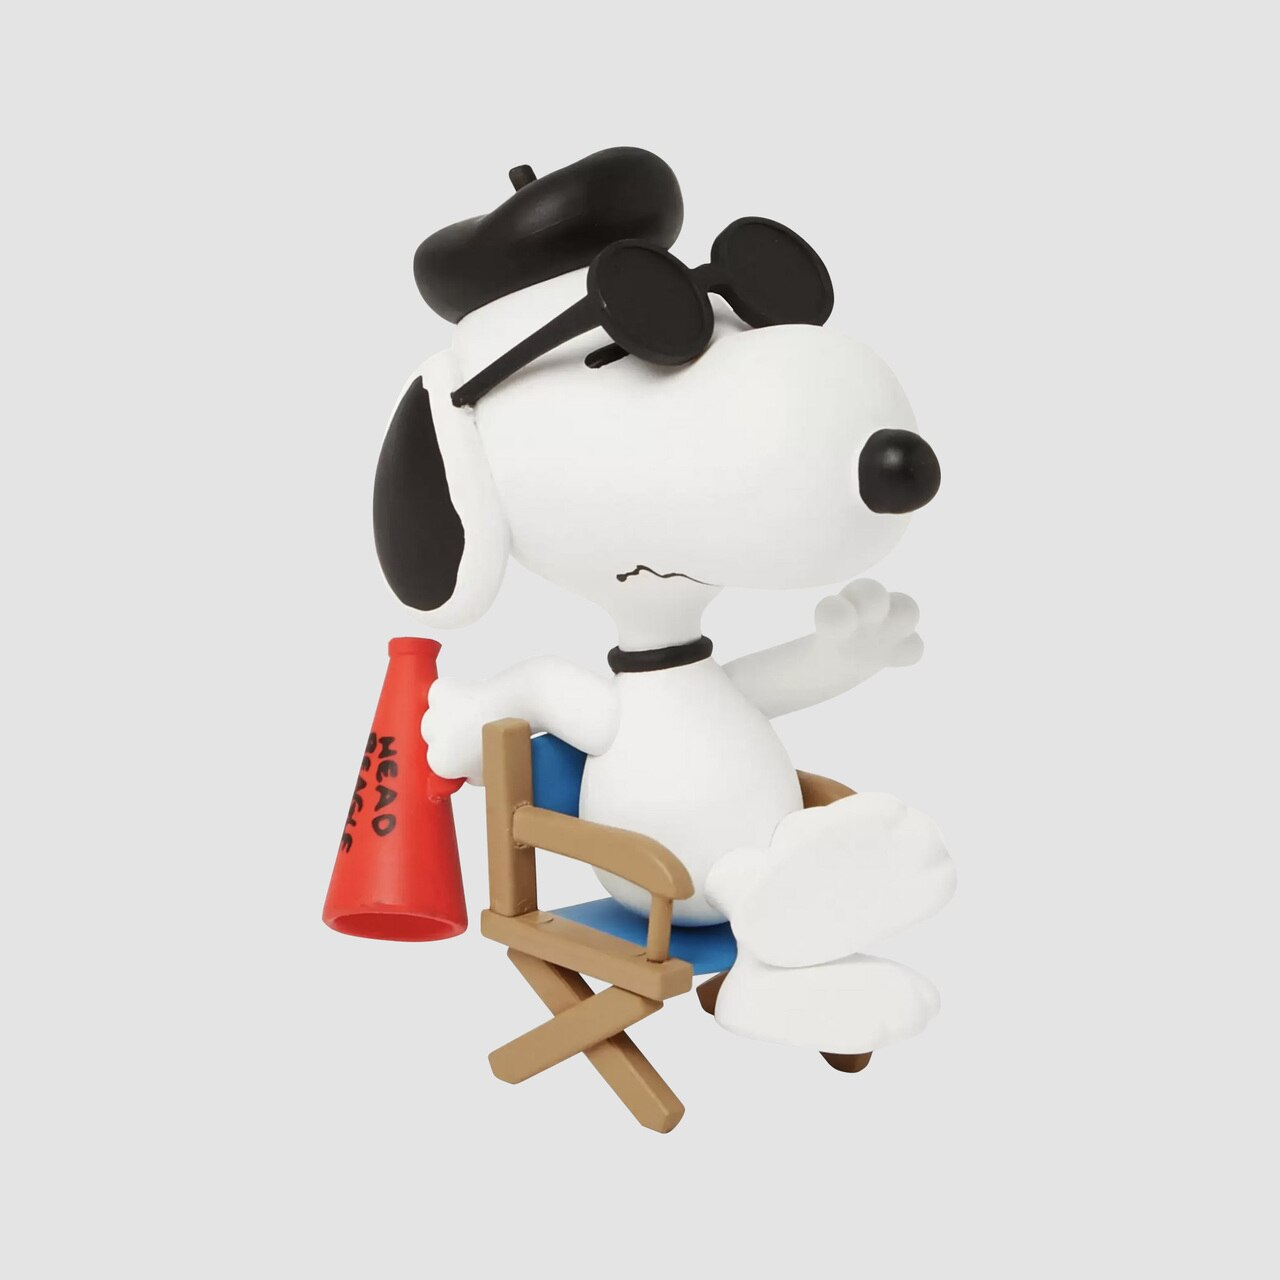 MEDICOM TOY: Peanuts Series 11 - Film Director Snoopy White Figure